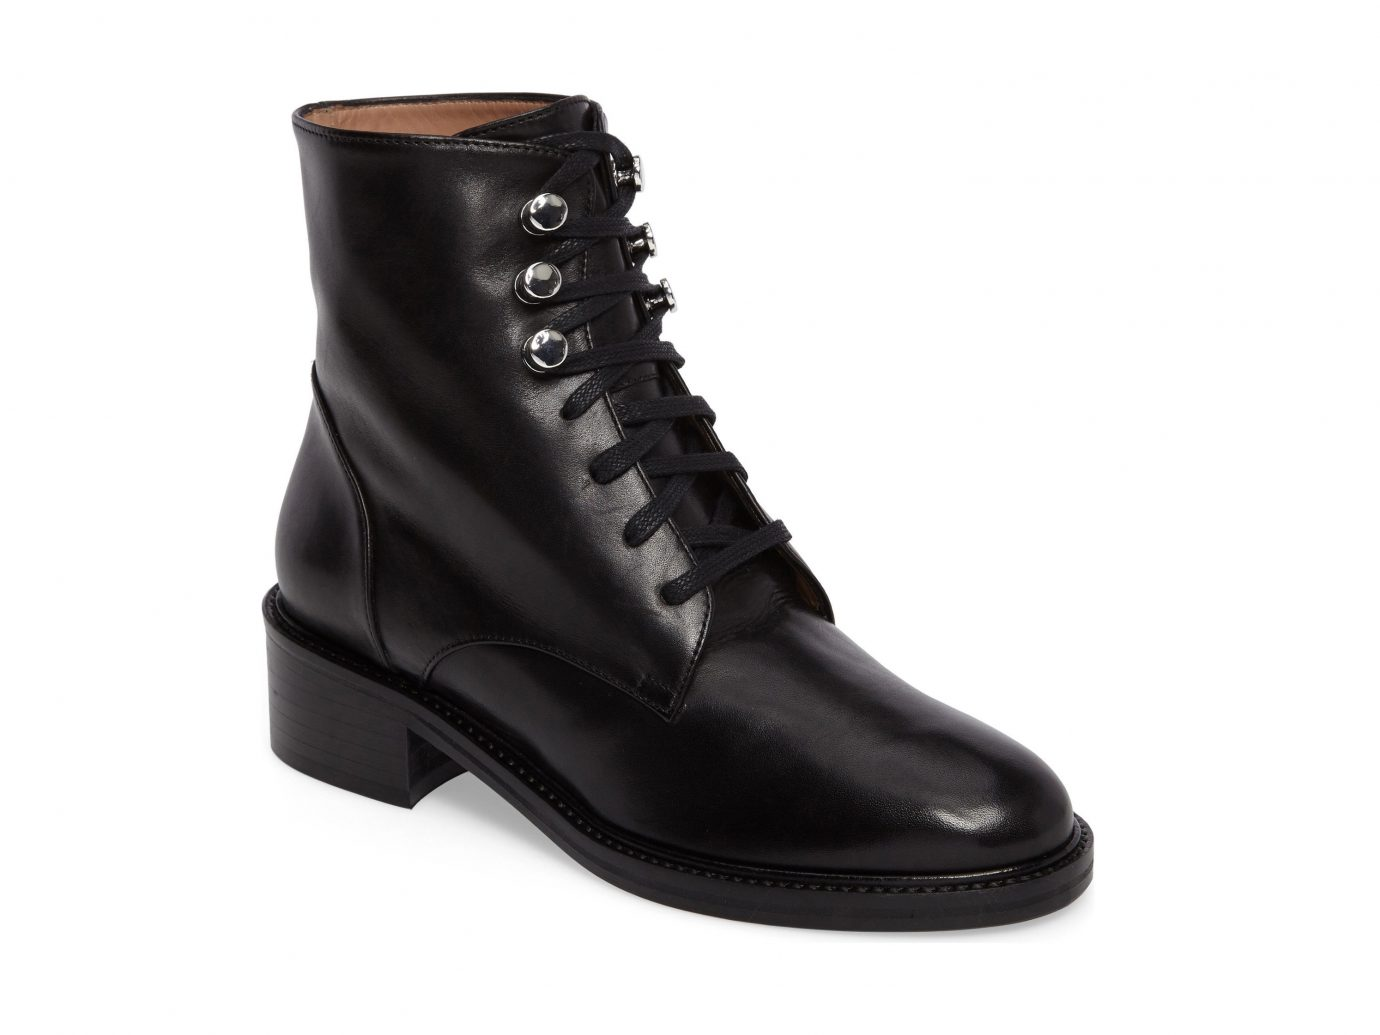 Fall Travel Style + Design Travel Shop Weekend Getaways clothing footwear boot indoor black shoe work boots motorcycle boot product walking shoe leather feet